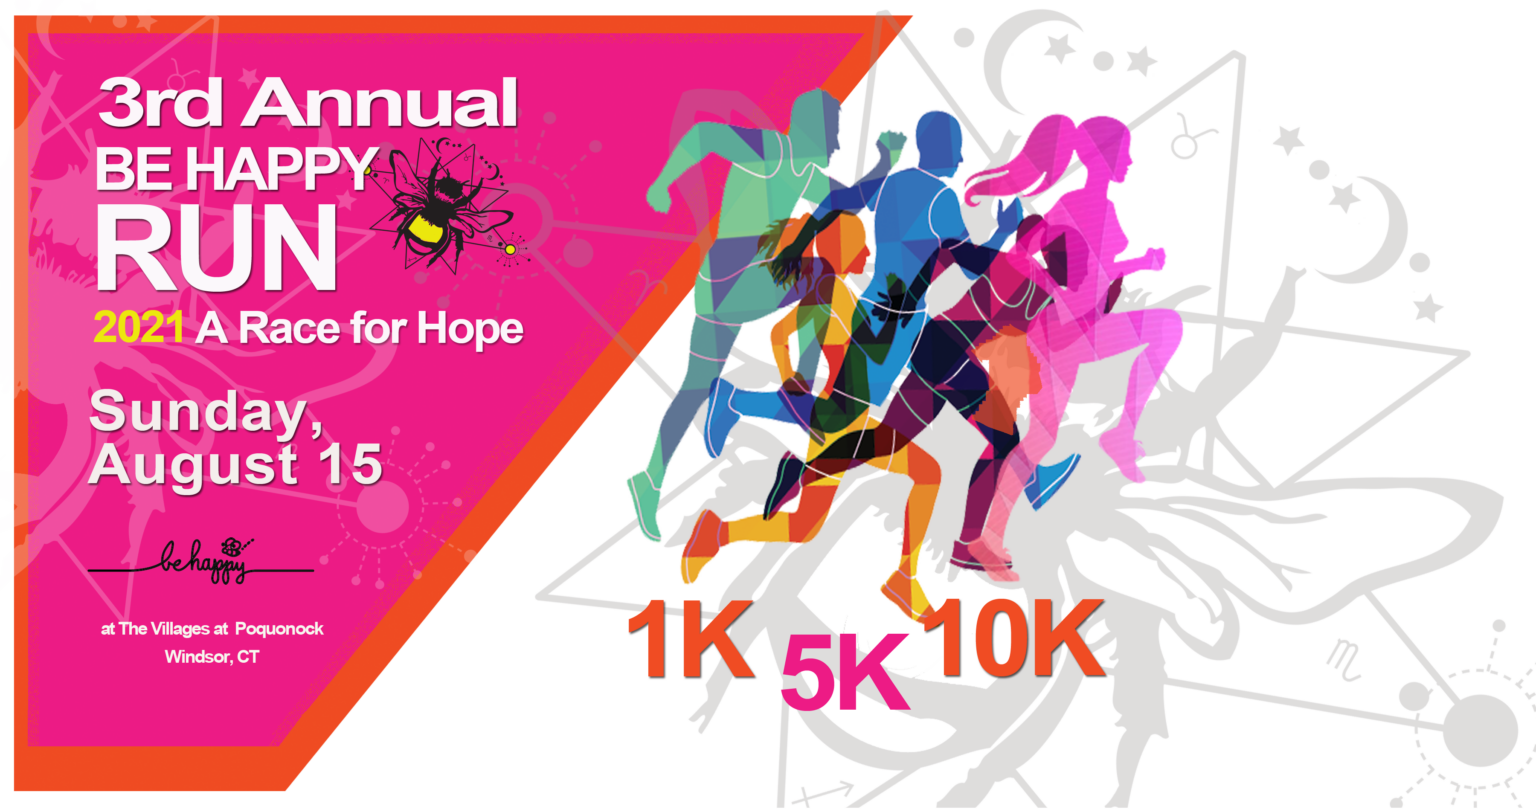 3rd Annual Be Happy 1K/5K/10K and Virtual Run – A Race for Hope @ The Villages at Poquonock